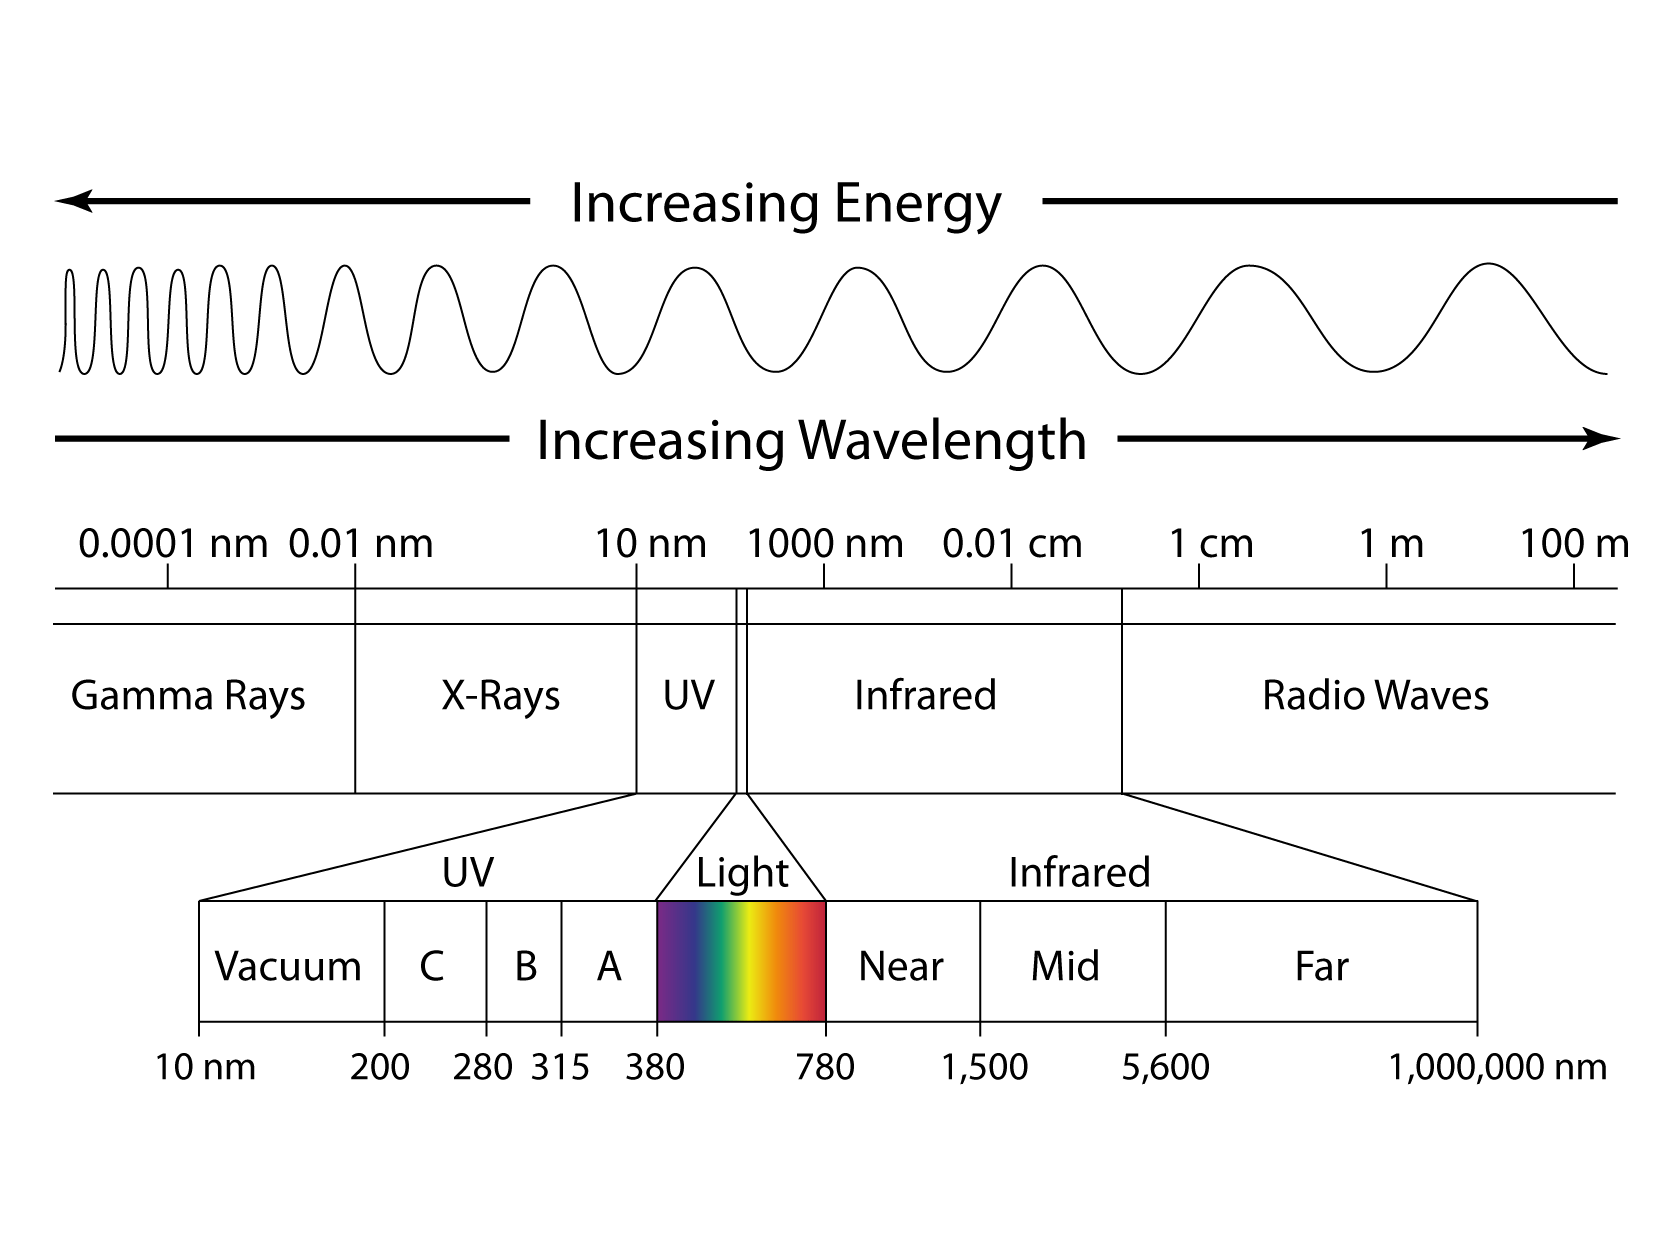 The Schema Frequency